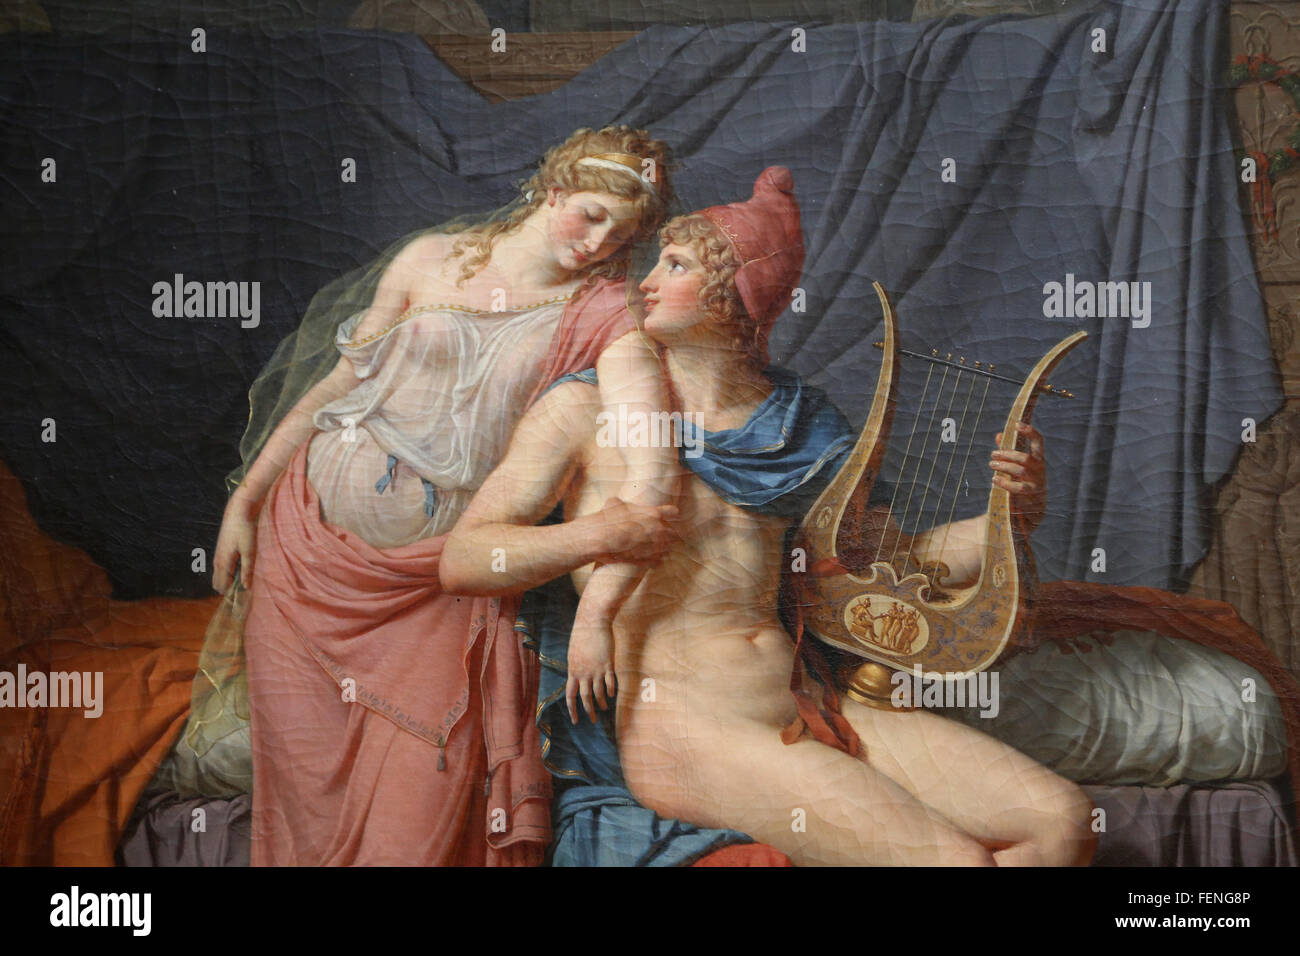 The Loves of Paris and Helen, 1788. Oil on Canvas. By Jacques-Louis David (1748-1825). Neoclassicism. Louvre Museum. - Stock Image